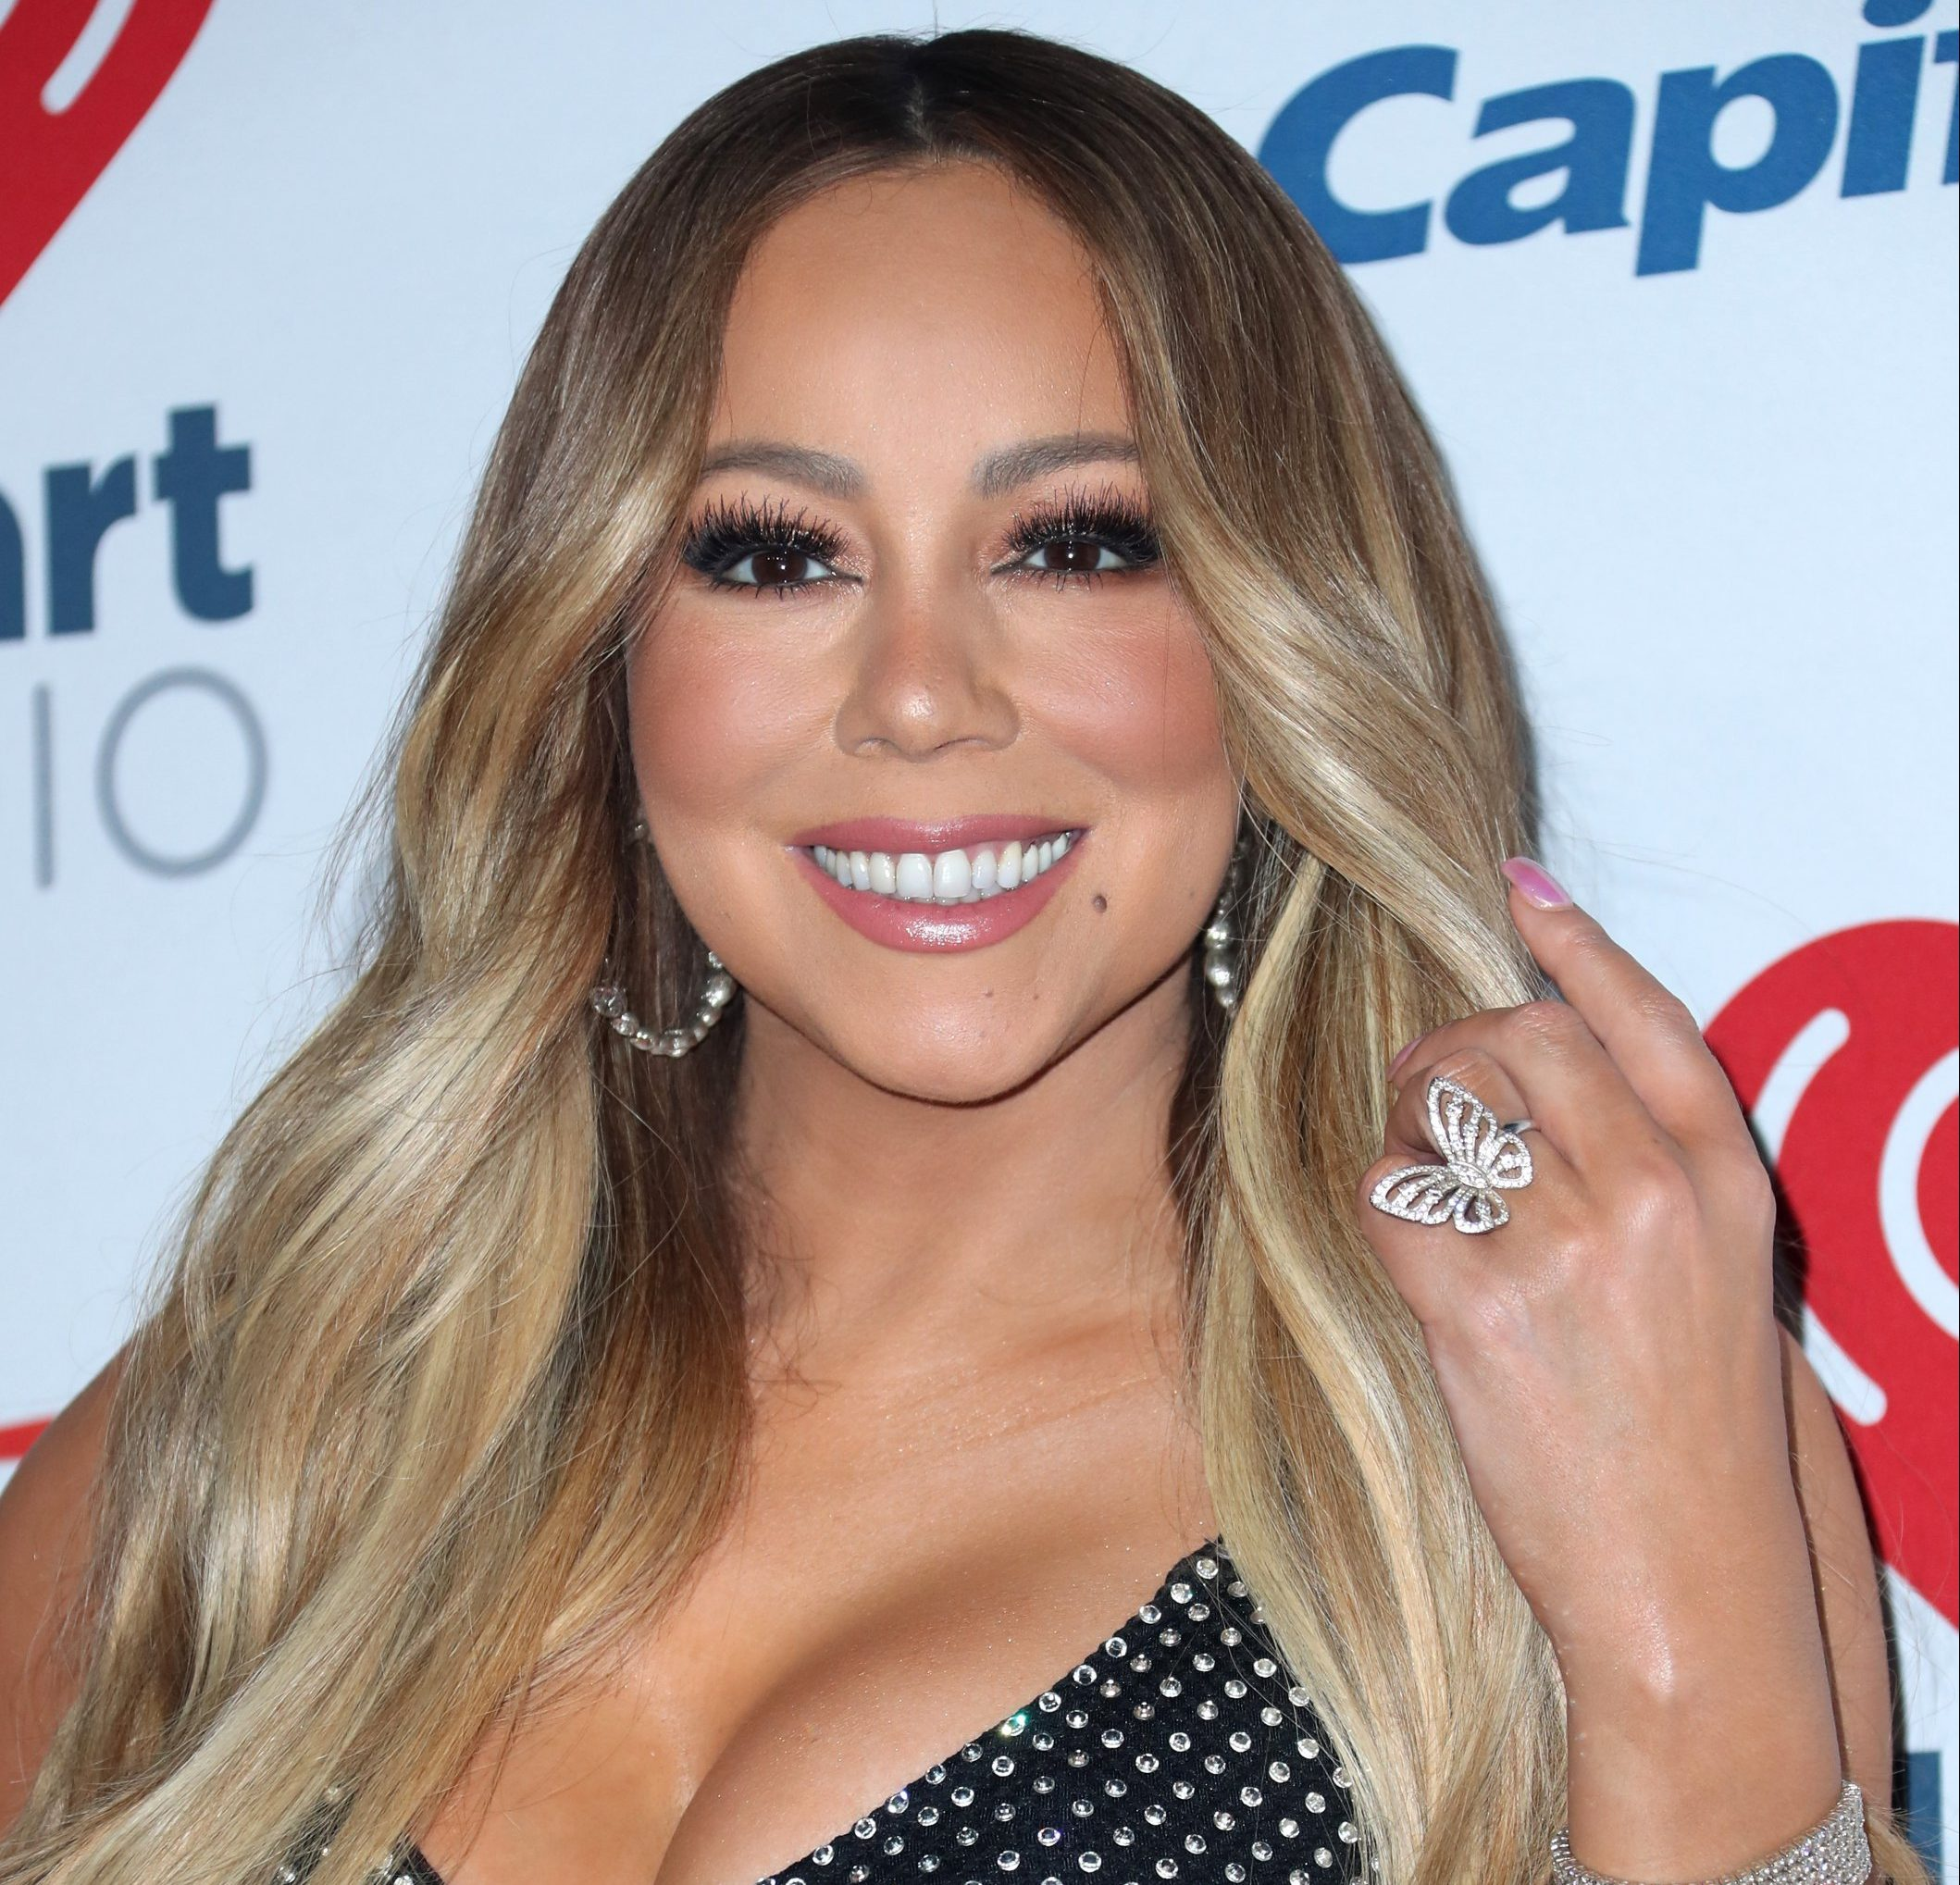 Mandatory Credit: Photo by AFF-USA/REX/Shutterstock (9889190el) Mariah Carey iHeartRadio Music Festival, Arrivals, Las Vegas, USA - 21 Sep 2018